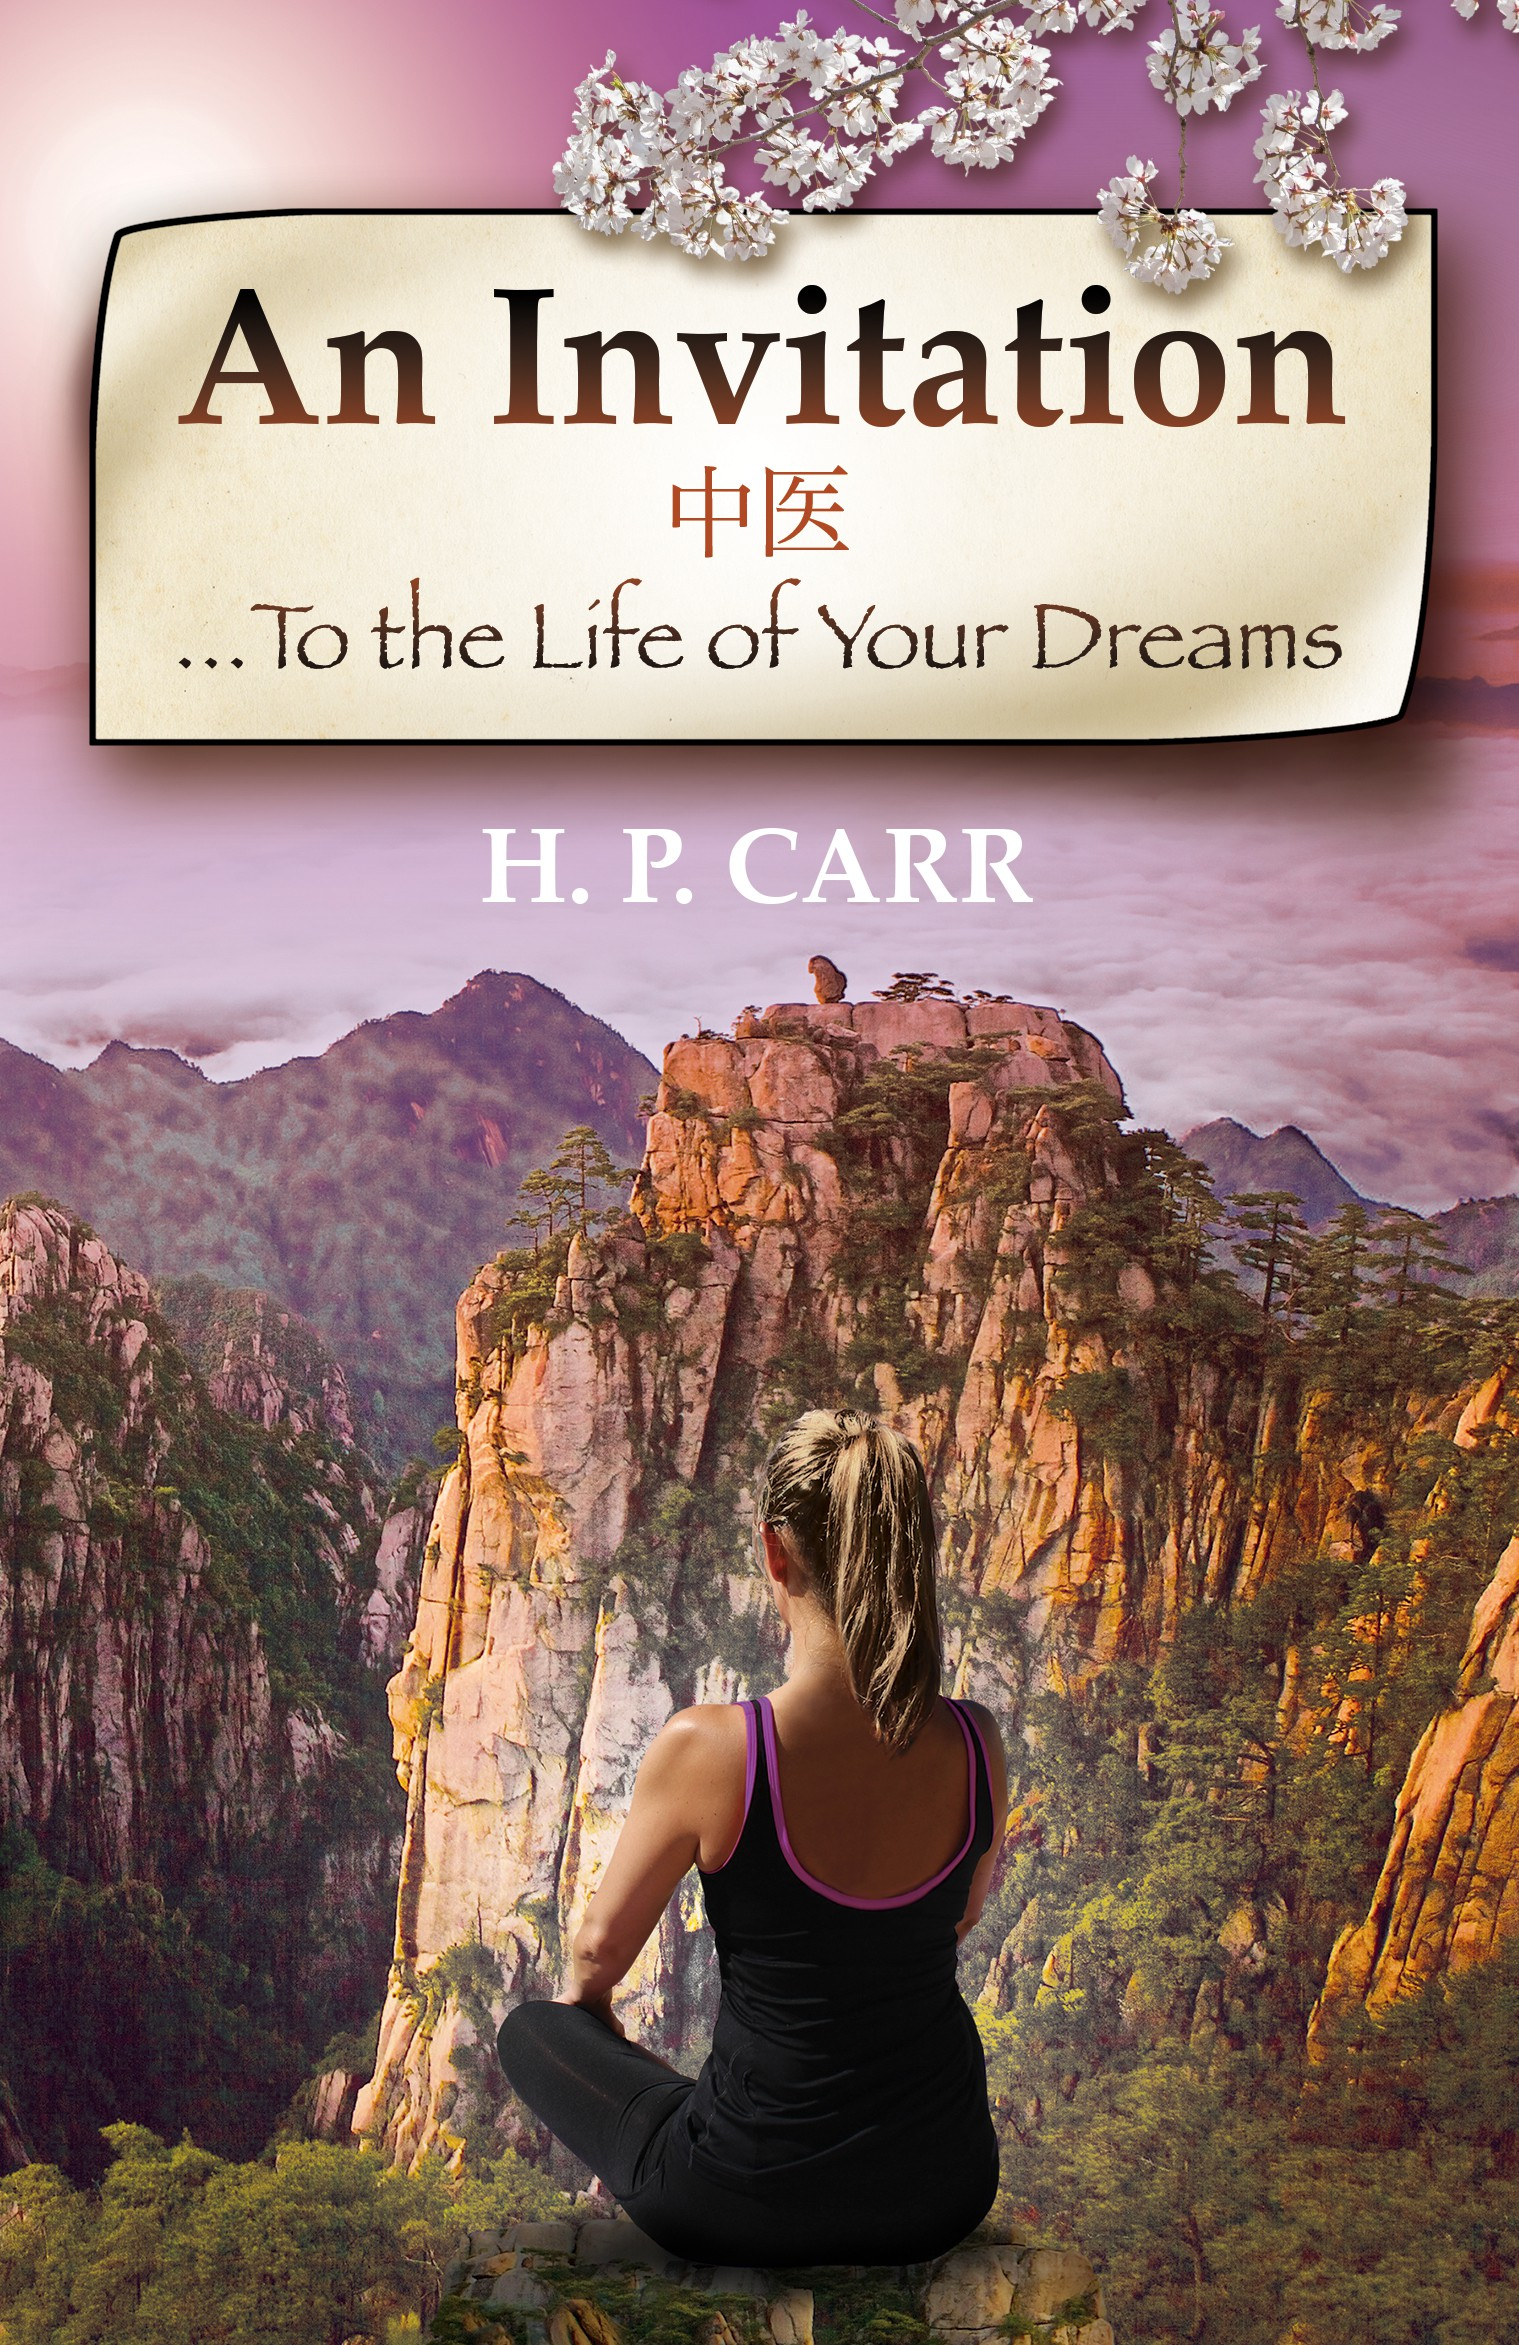 An Invitation ...To the Life of Your Dreams